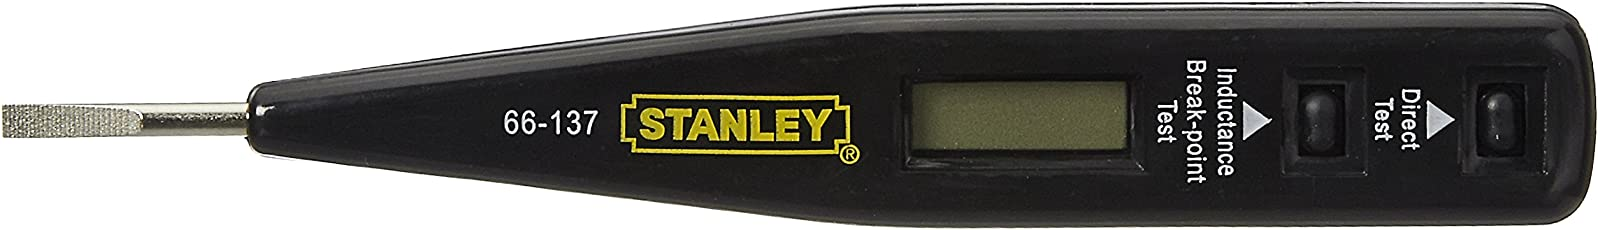 Stanley 66-137 Digital Tester (Yellow and Black)